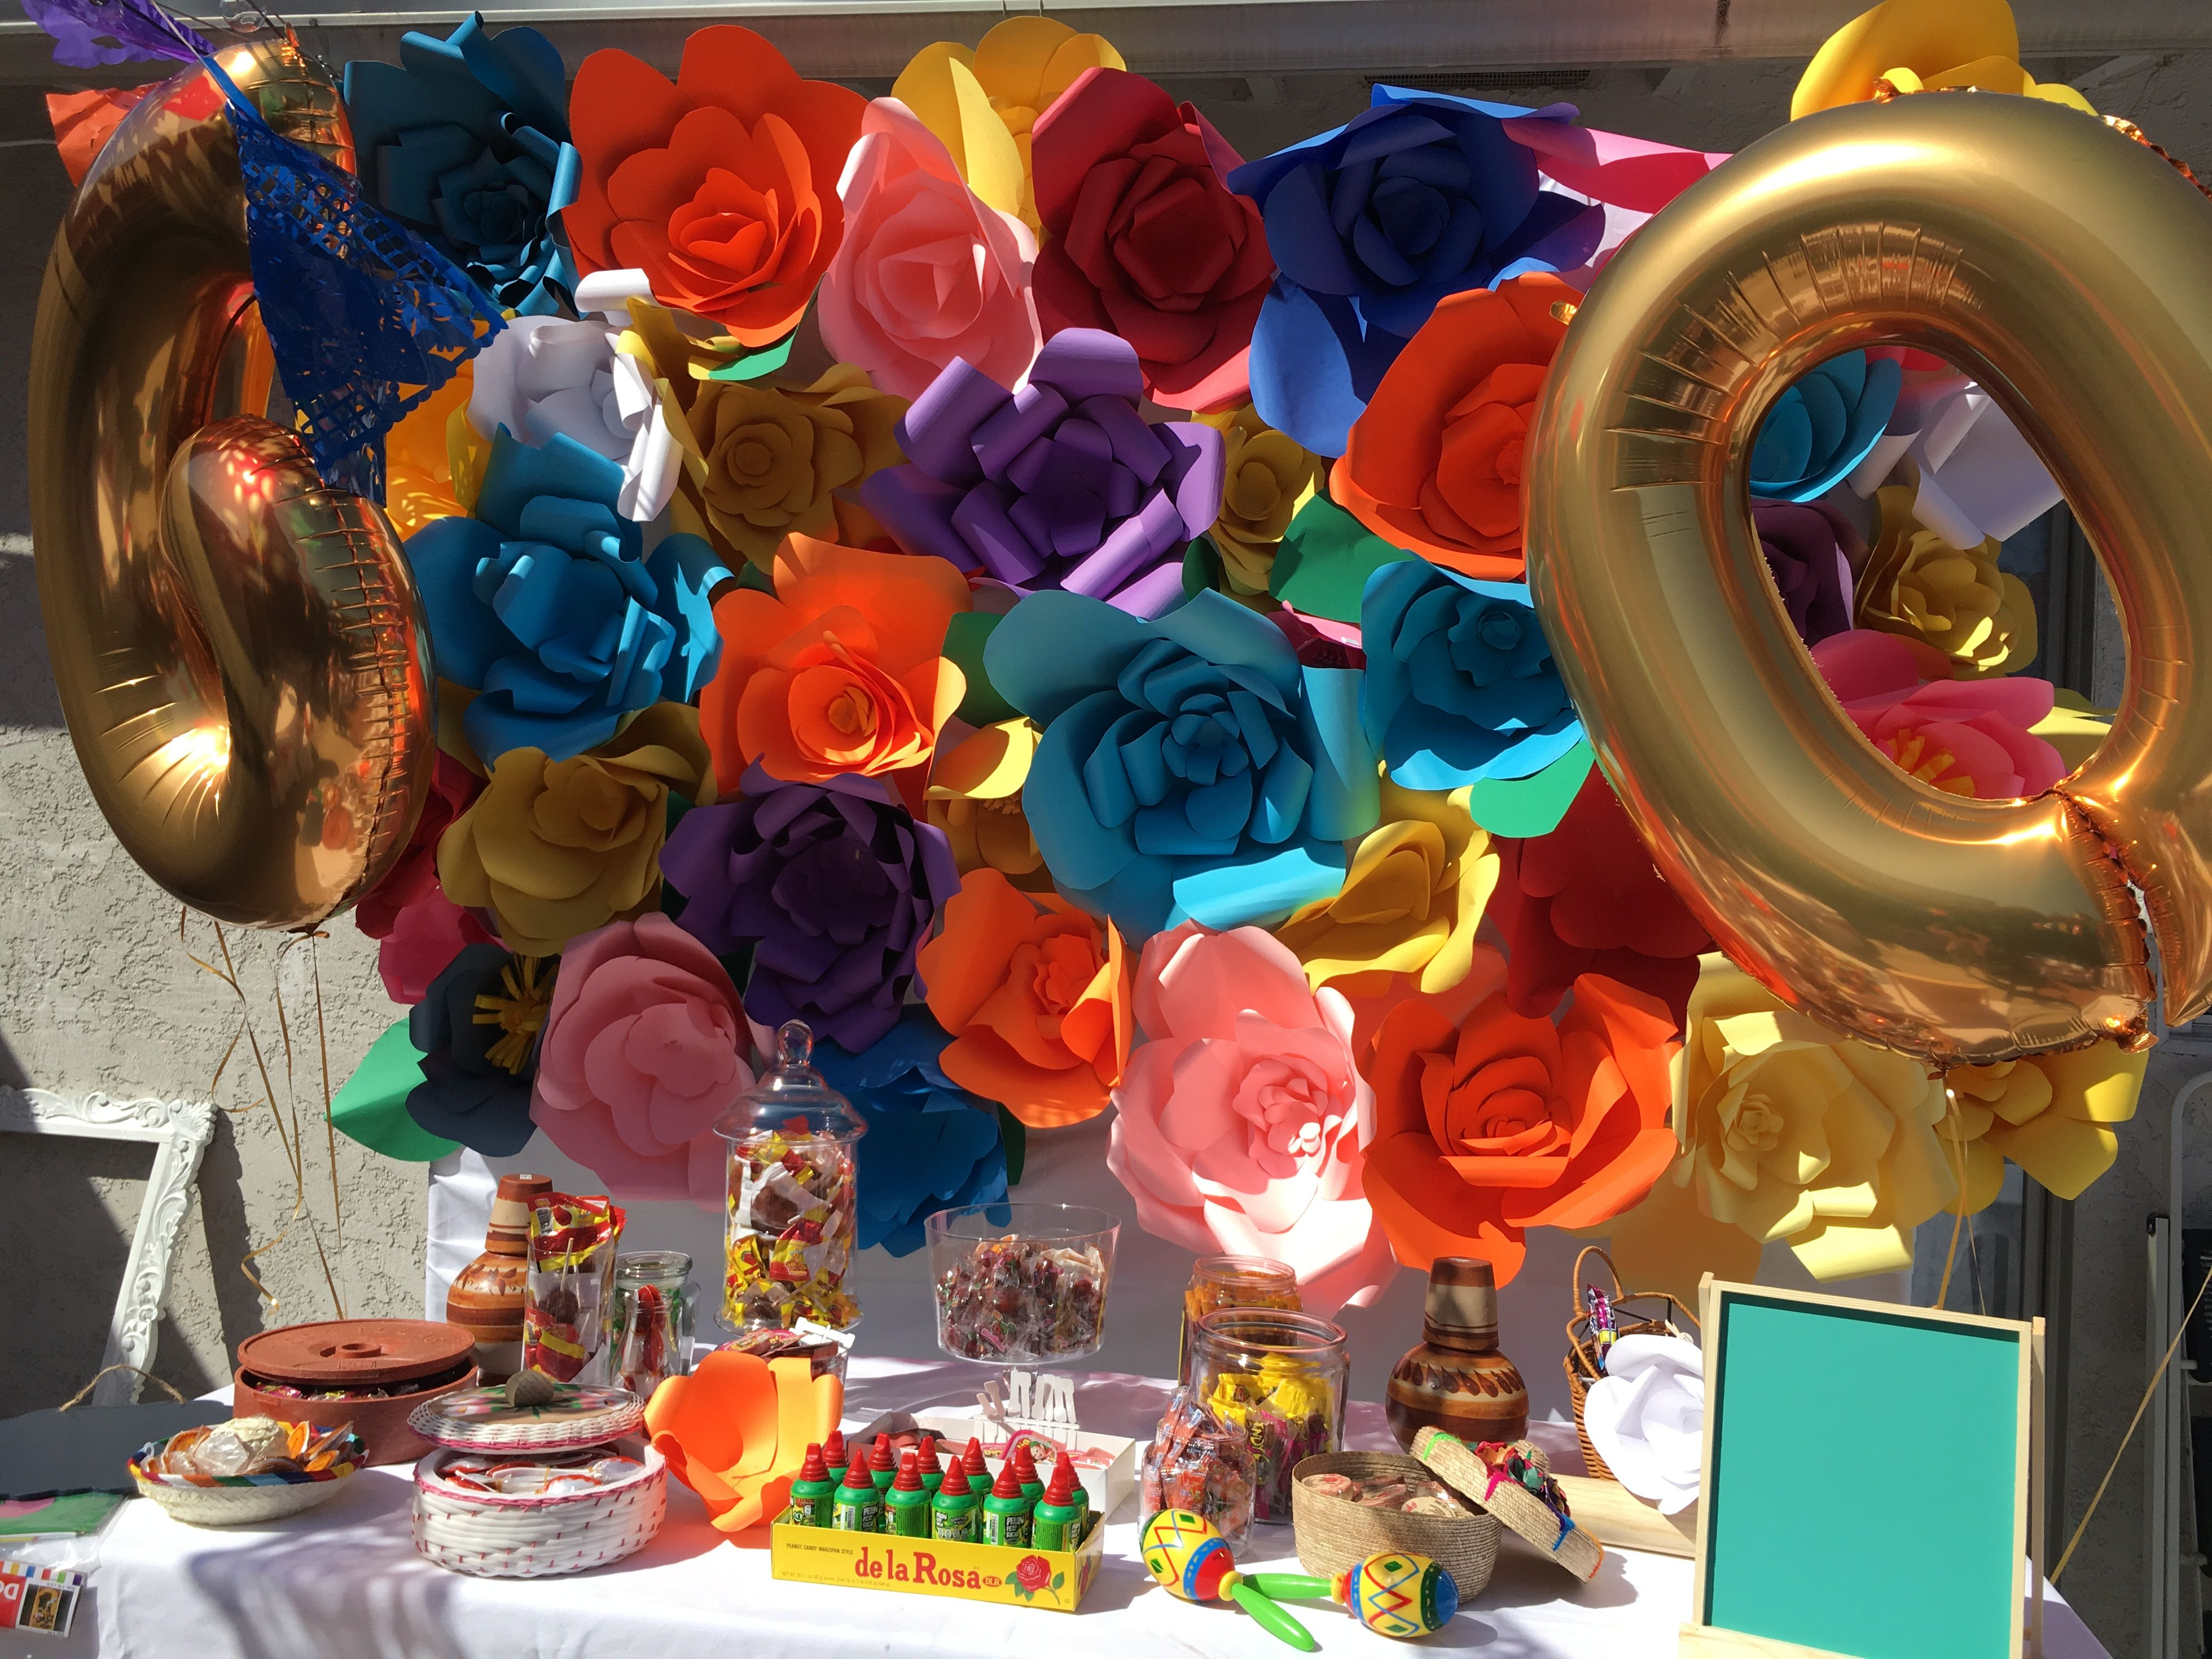 Fiesta table decorations ideas - Paper Flower Backdrops For Birthday Wedding Babyshower Celebration Candy Table Decoration Mexican Theme Fiesta Party